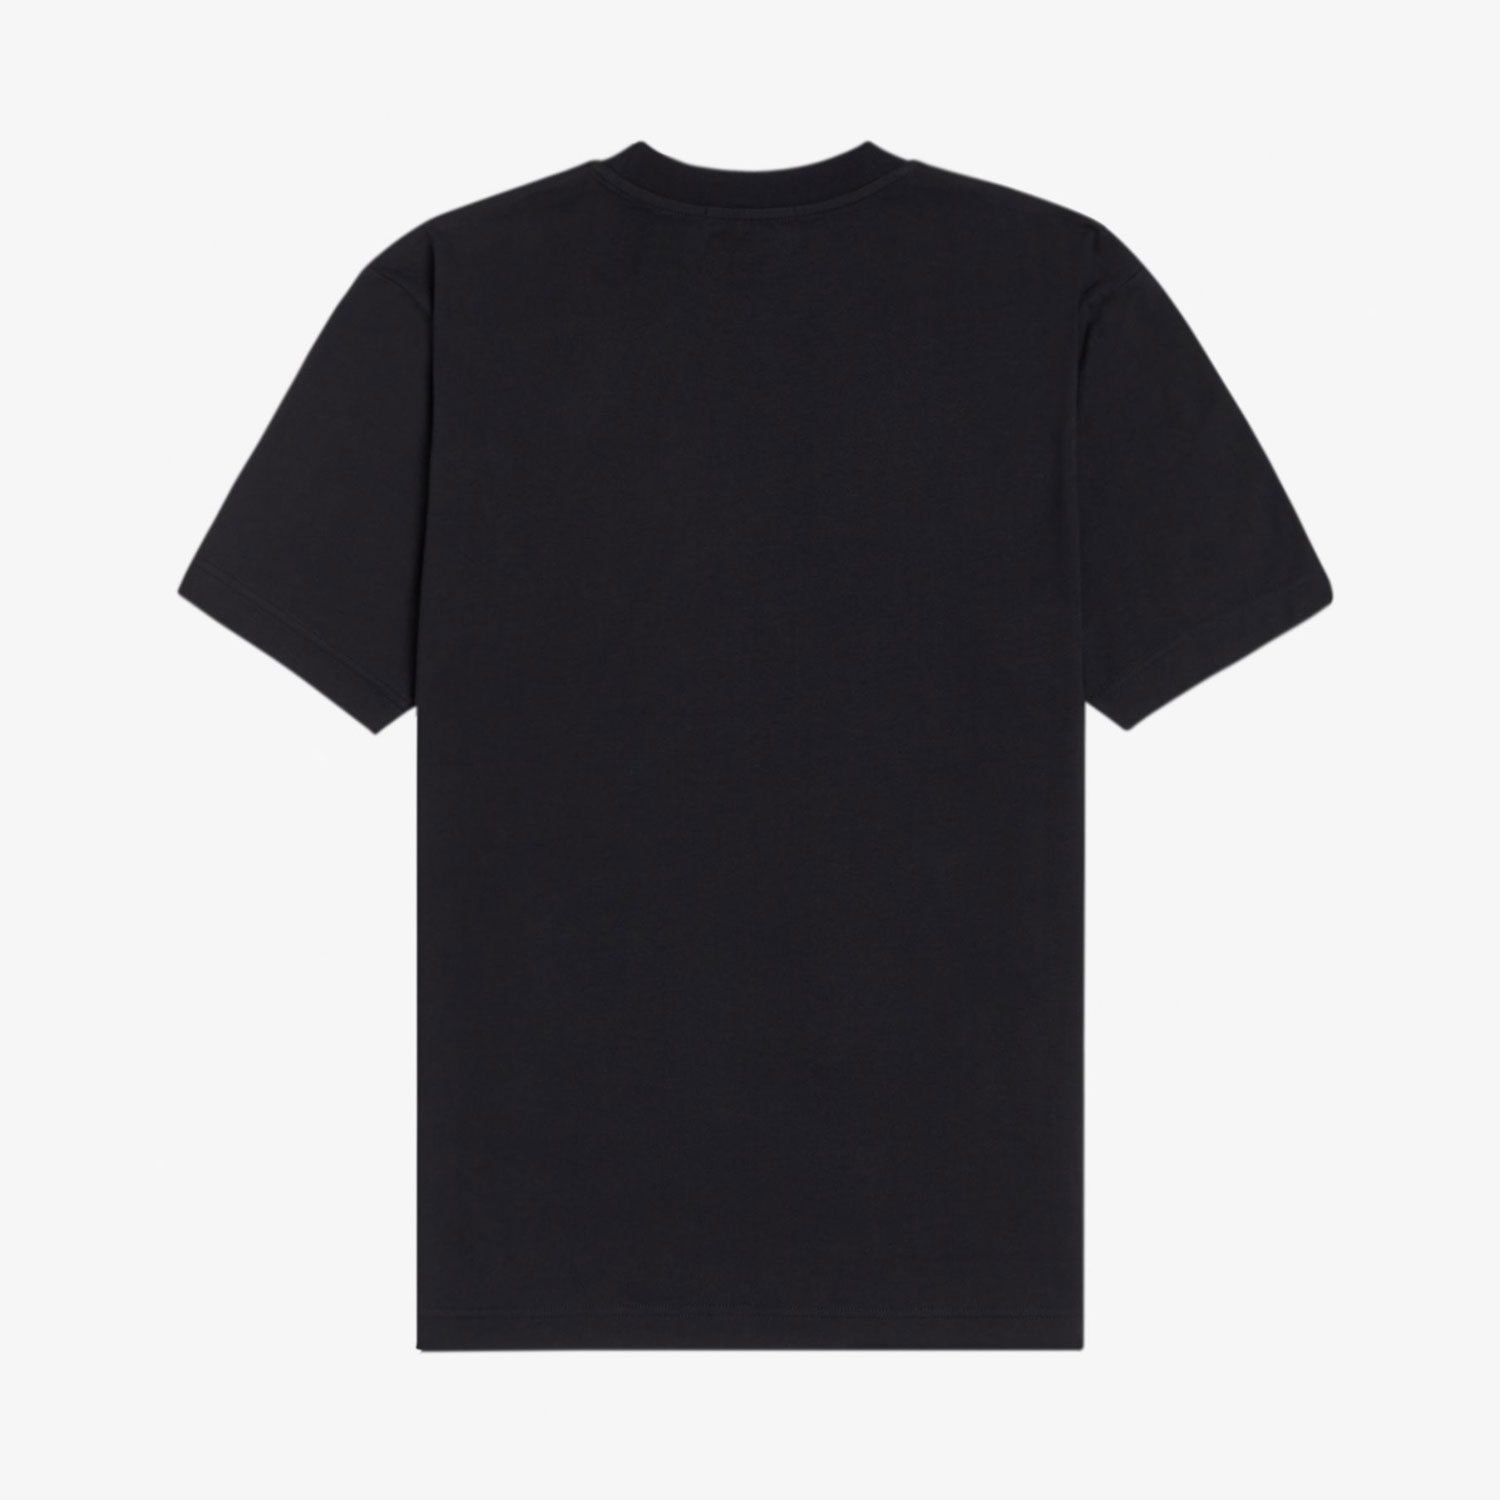 Fred Perry Graphic Applique Tee - Black 1